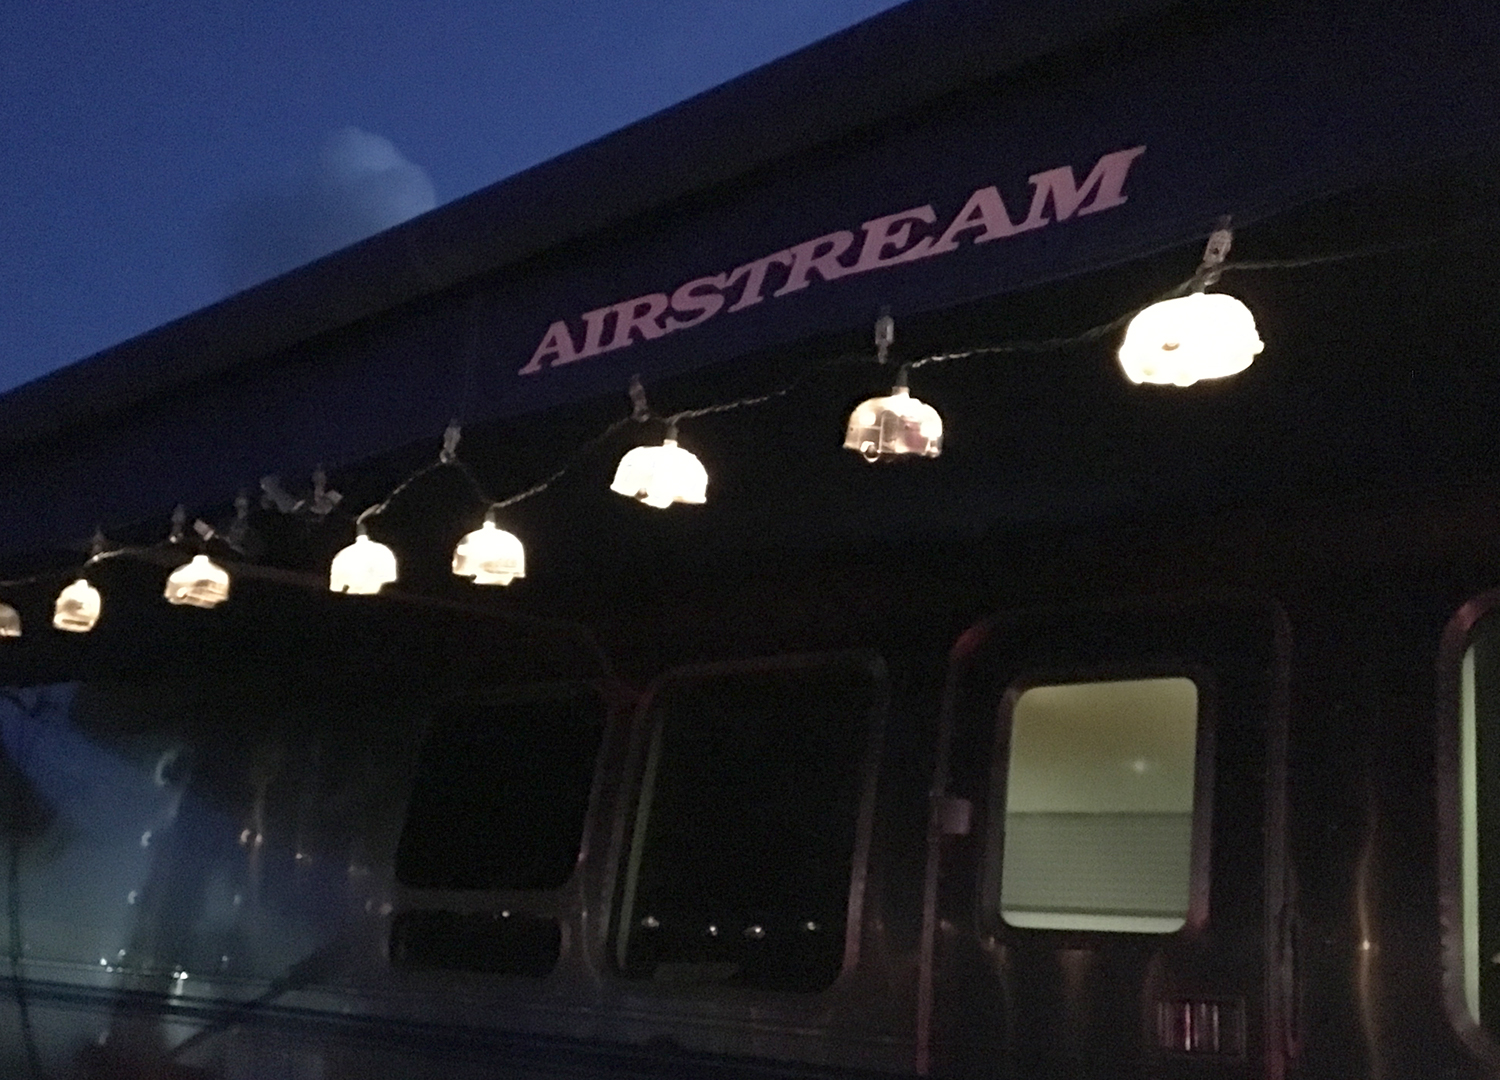 Airstream-Travel-Trailer-Awning-Lights